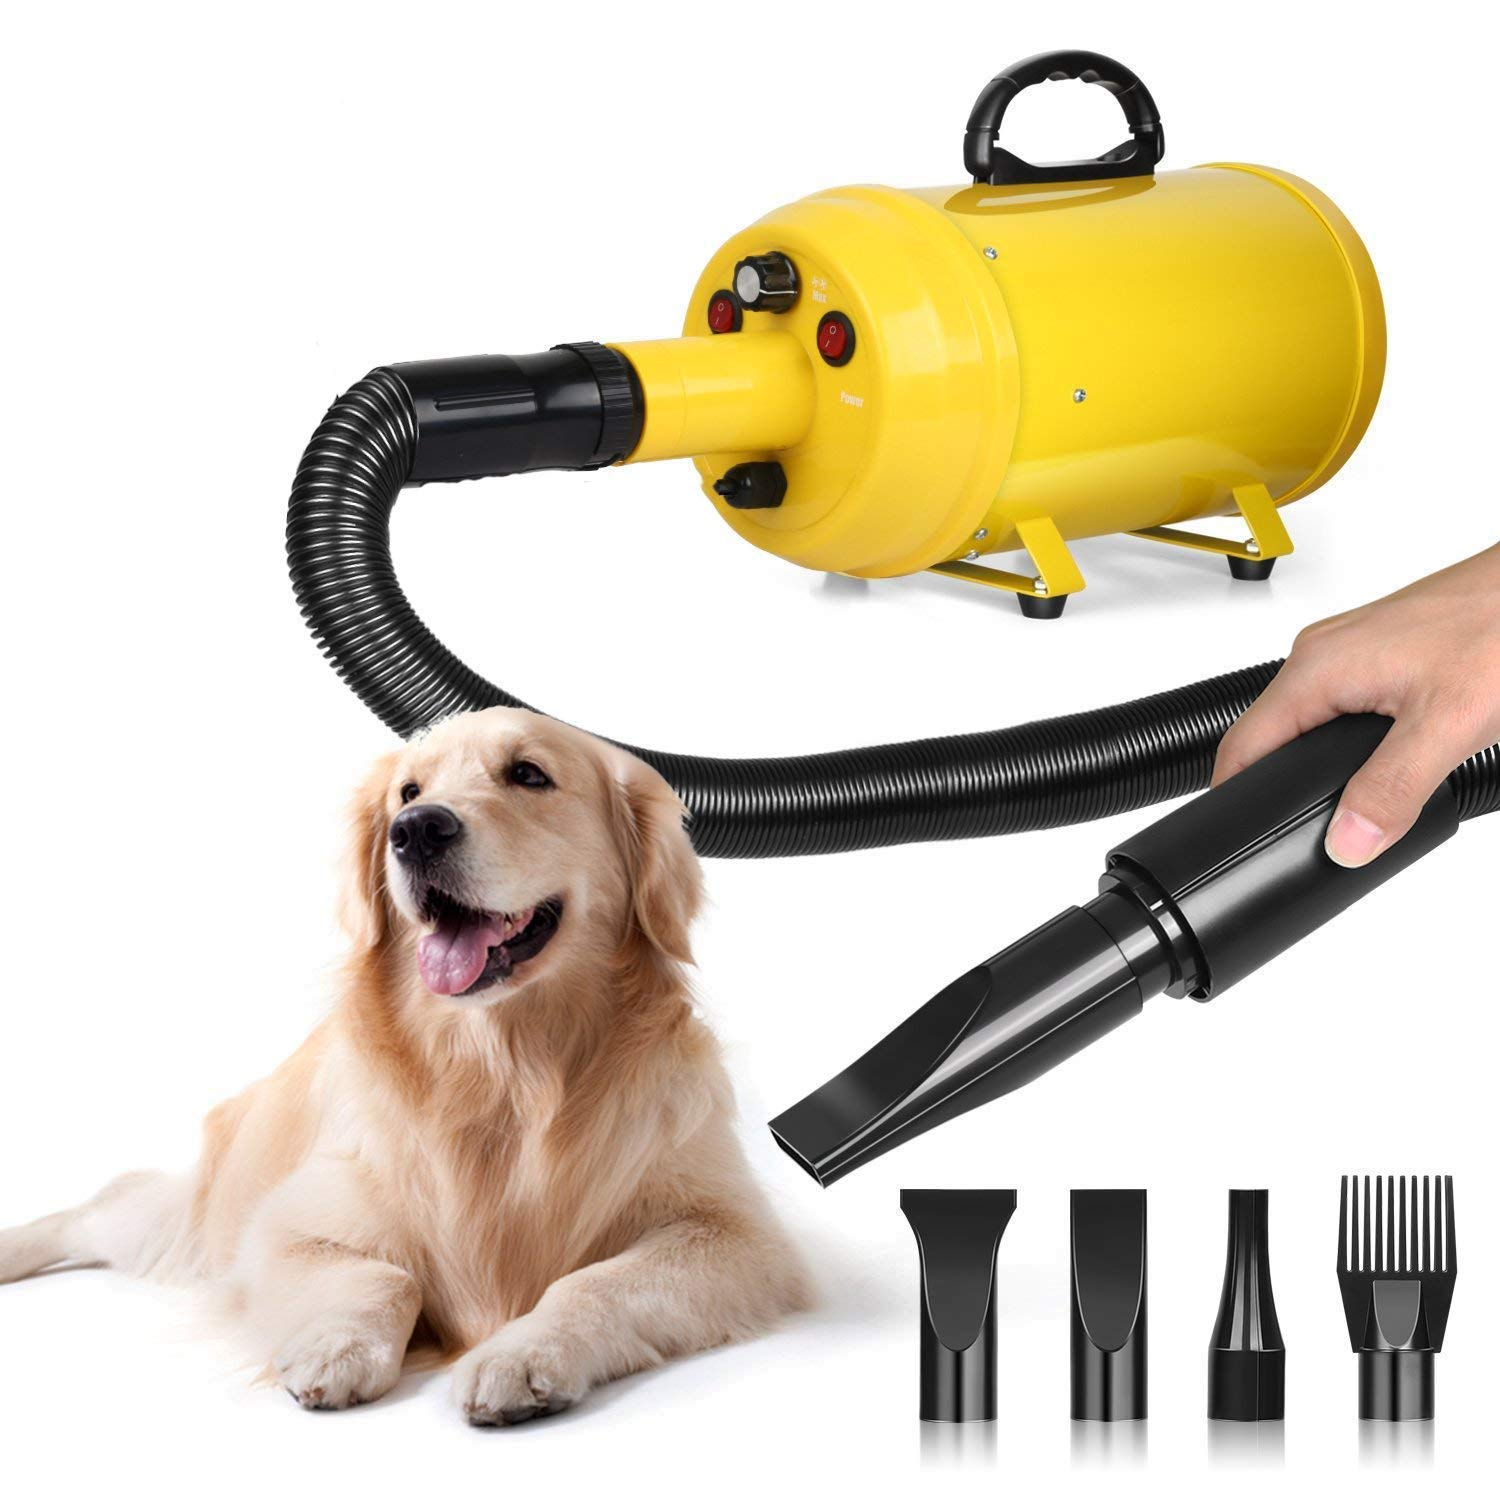 amzdeal Dog Dryer Dog Hair Dryer 3.8HP 2800W Pet Blow Dryer Professional Dog Grooming Dryer Dog Blower with Adjustable Speed and Temperature, Spring Hose, and 4 Different Nozzles